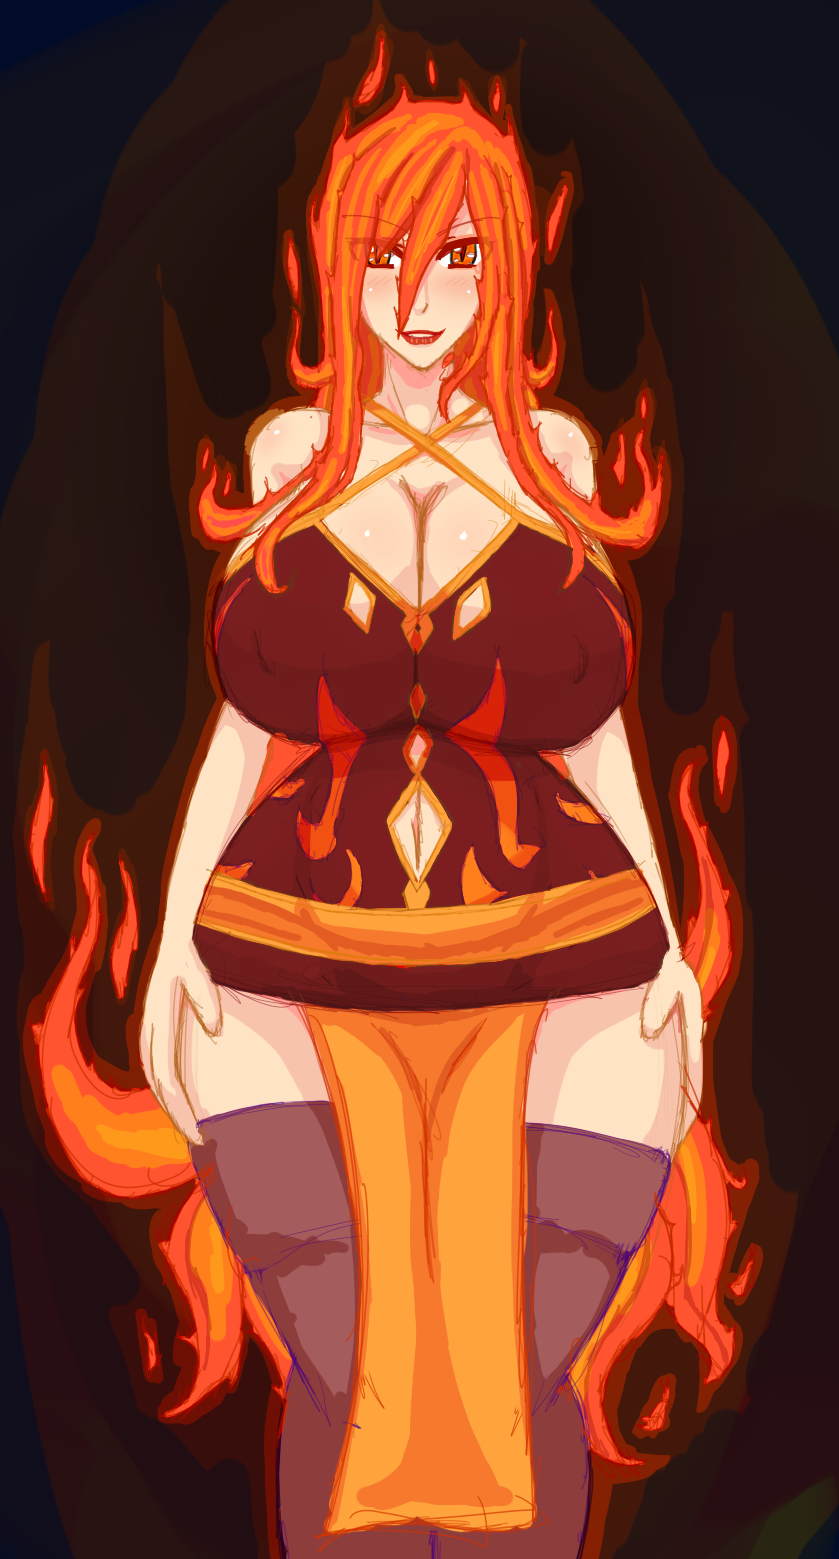 Melicia - Flame Demon / Sorceress by Doom-san